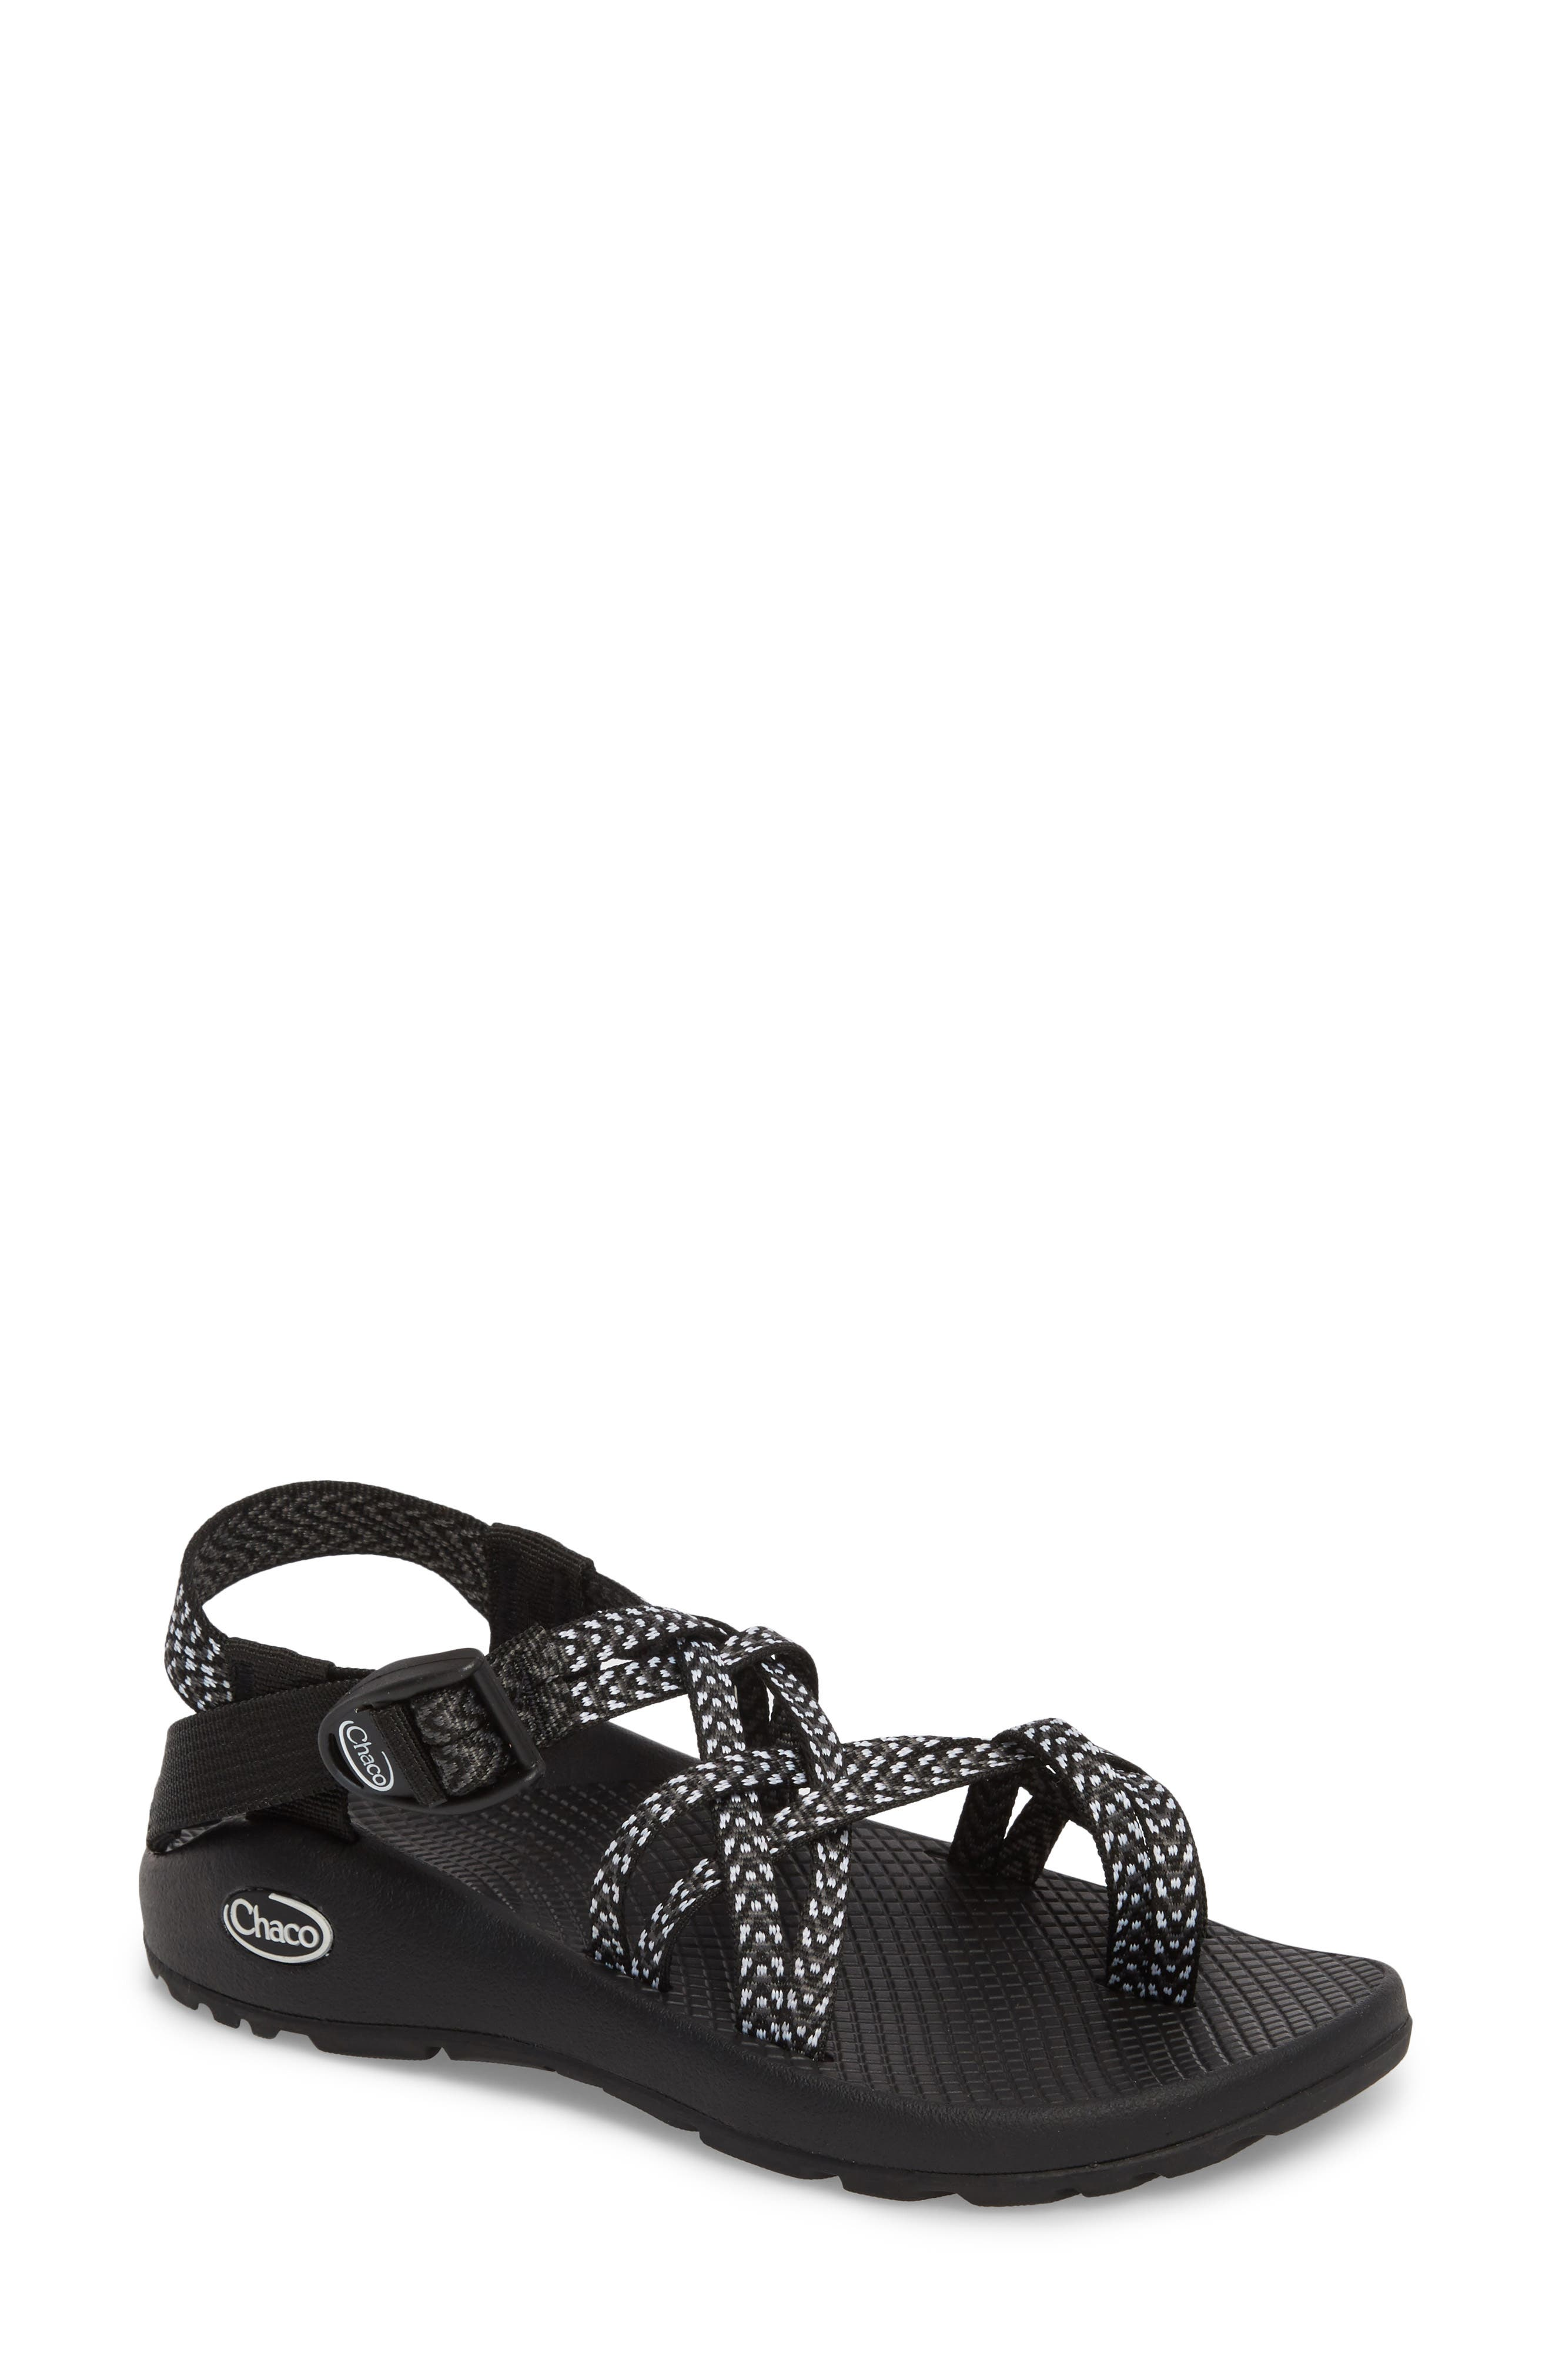 Alternate Image 1 Selected - Chaco ZX/2® Classic Sandal (Women)